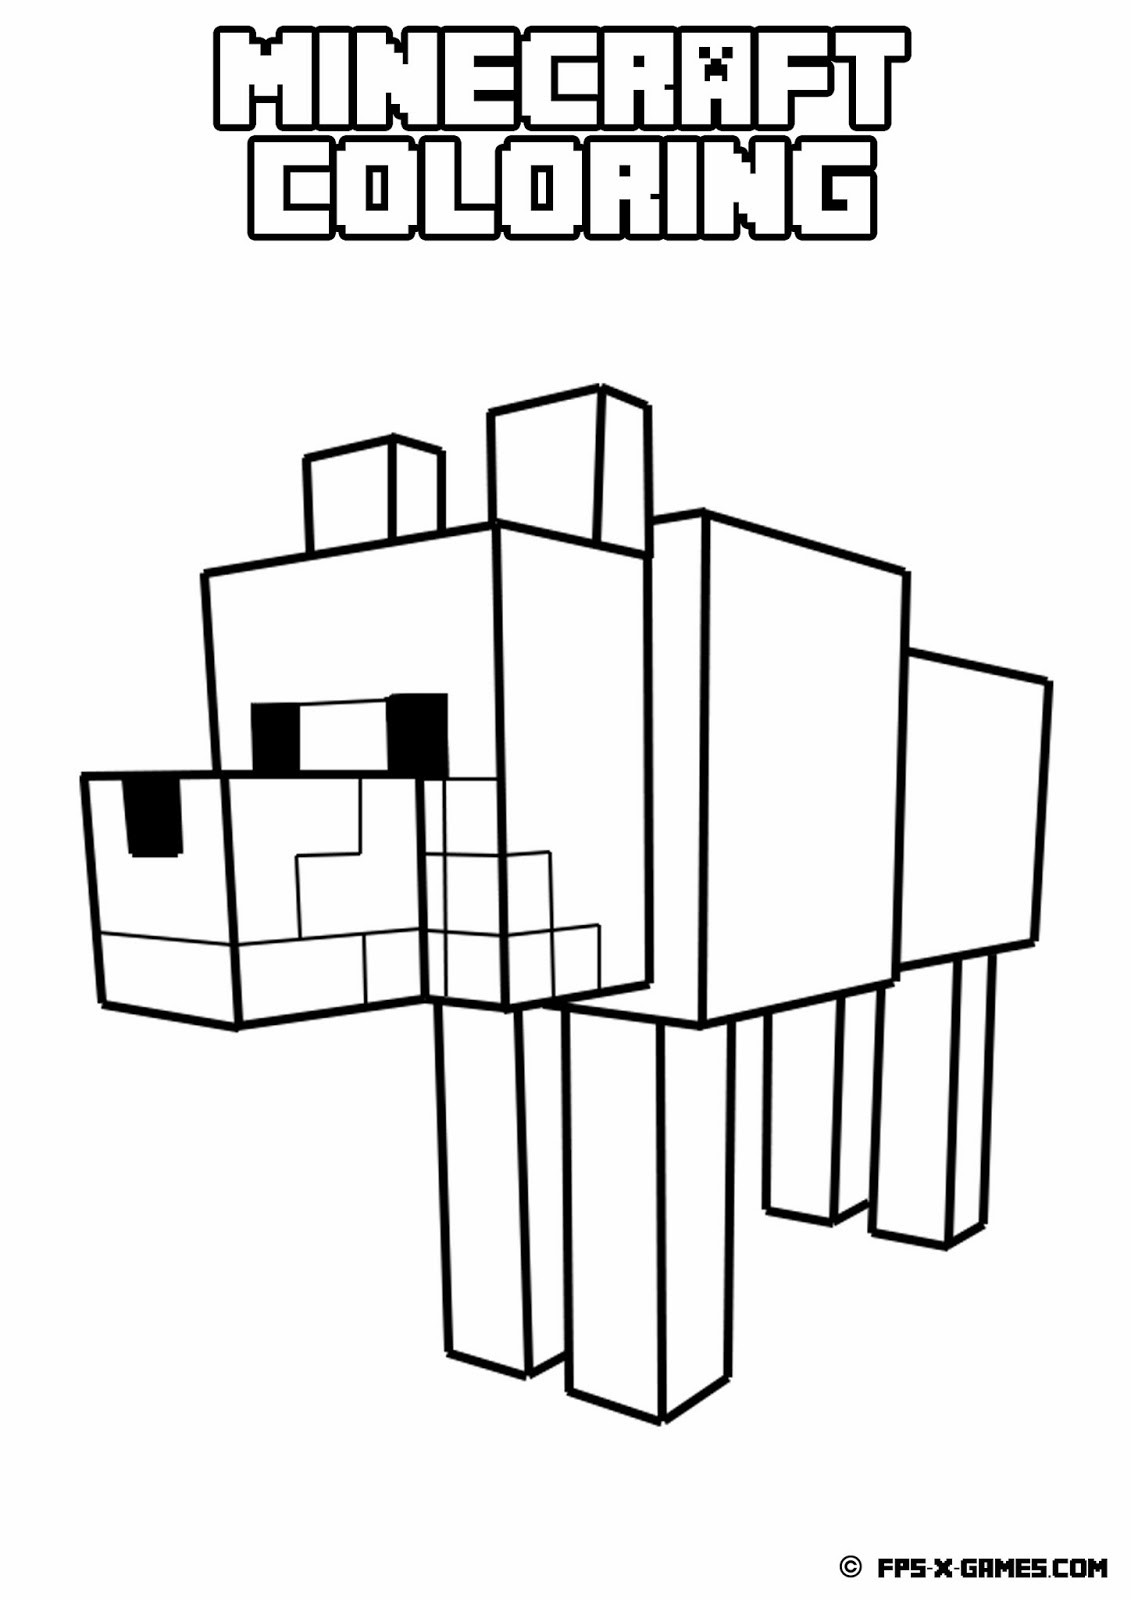 coloring minecraft worksheets 13 coloring pages of minecraft print color craft worksheets minecraft coloring